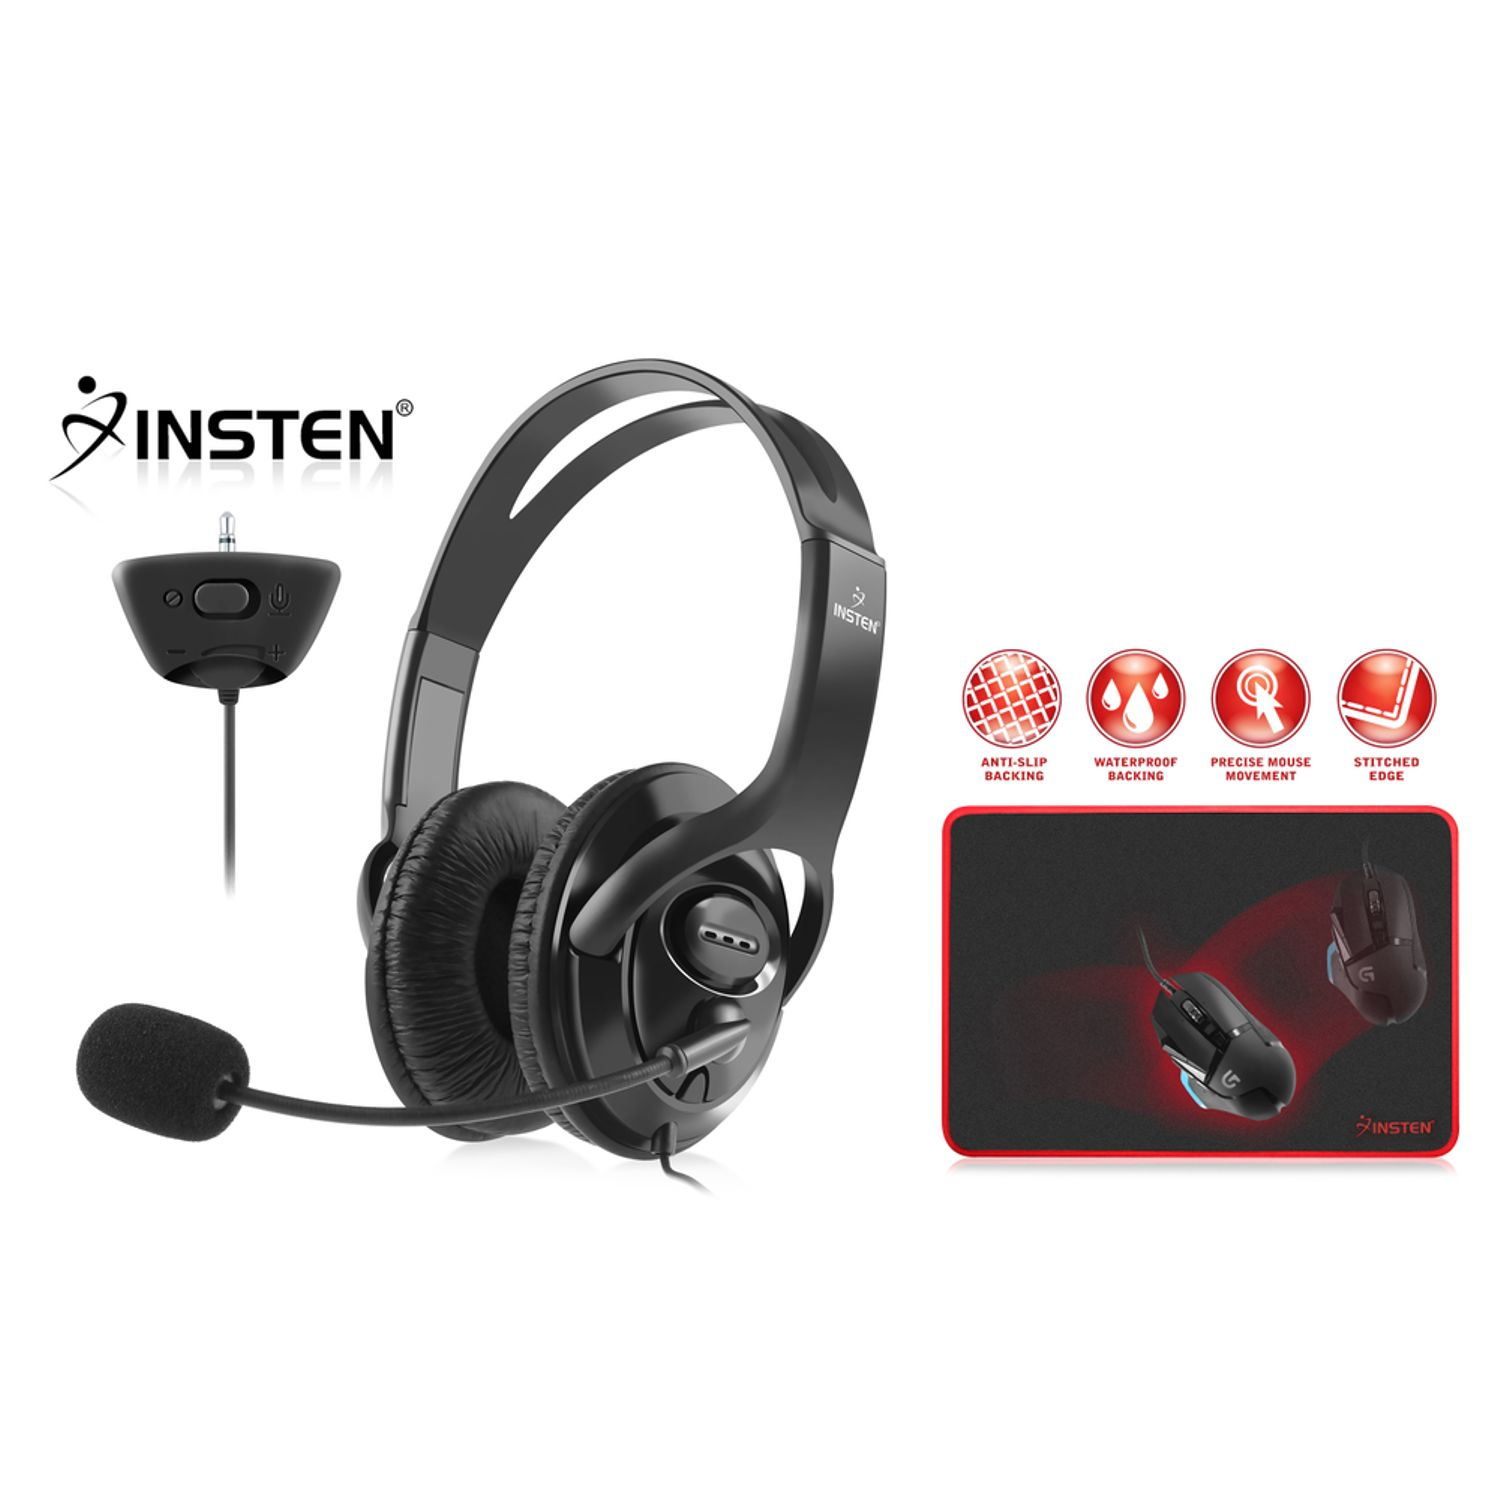 """Insten Gaming Headset with Microphone For PS4 MicroSoft XBox 360 Black + Gaming Mouse Pad Mat (13.8 x 10.2"""")"""